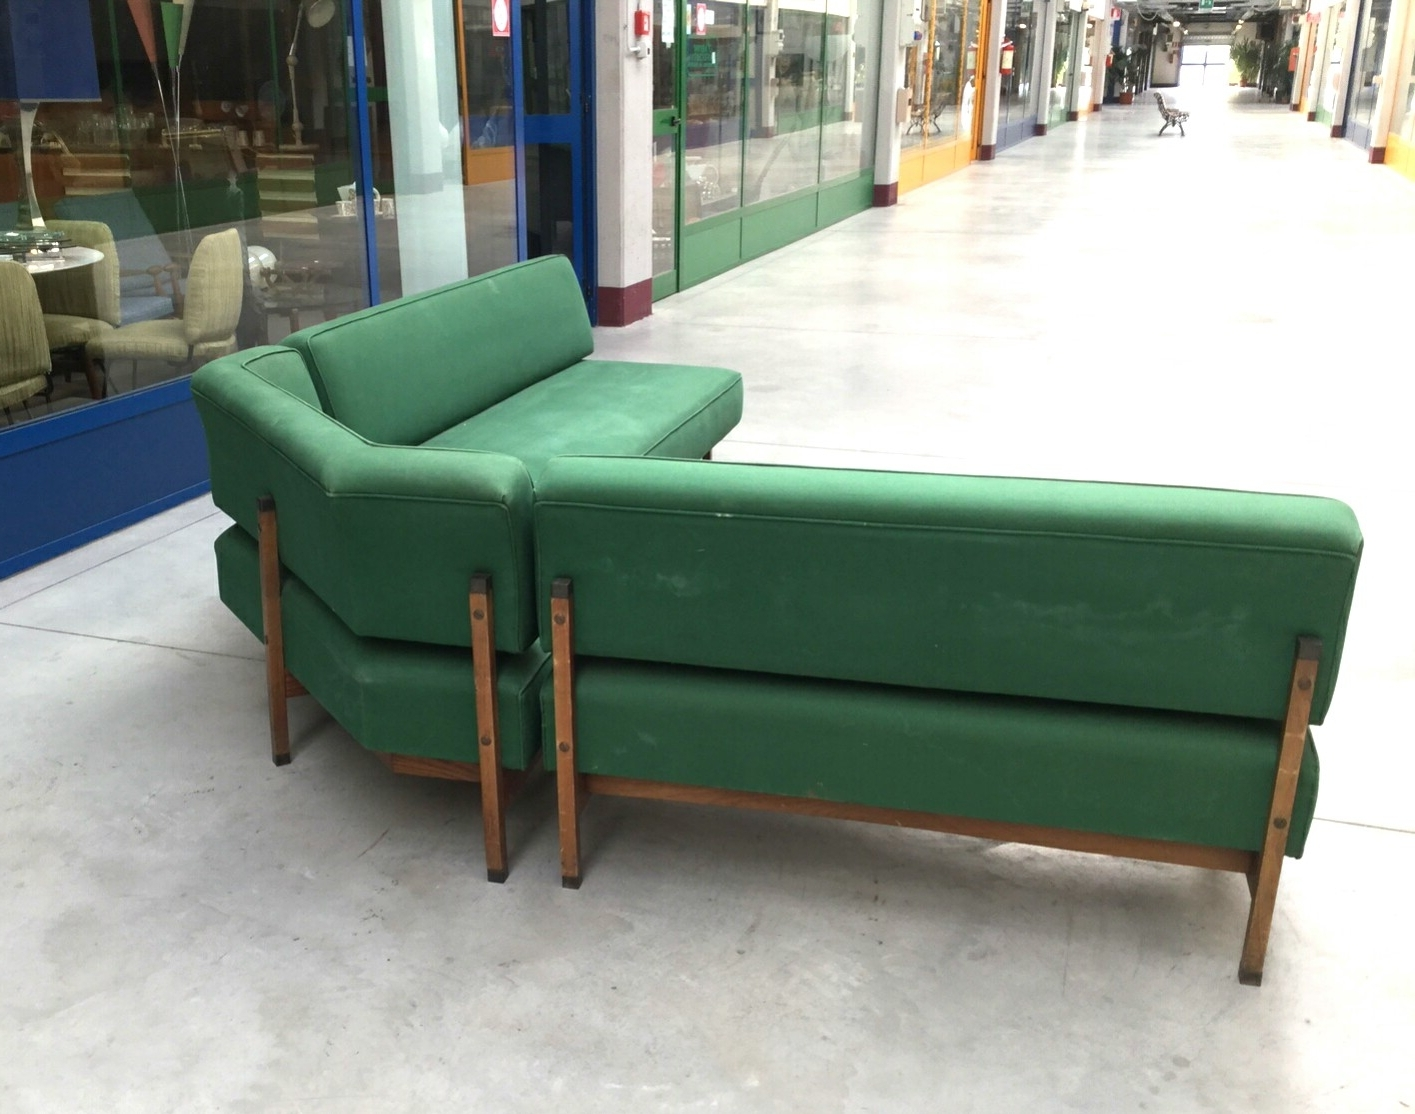 Famous Modular Corner Sofas Regarding Mid Century Italian Green Modular Corner Sofa, 1960S For Sale At (View 7 of 20)